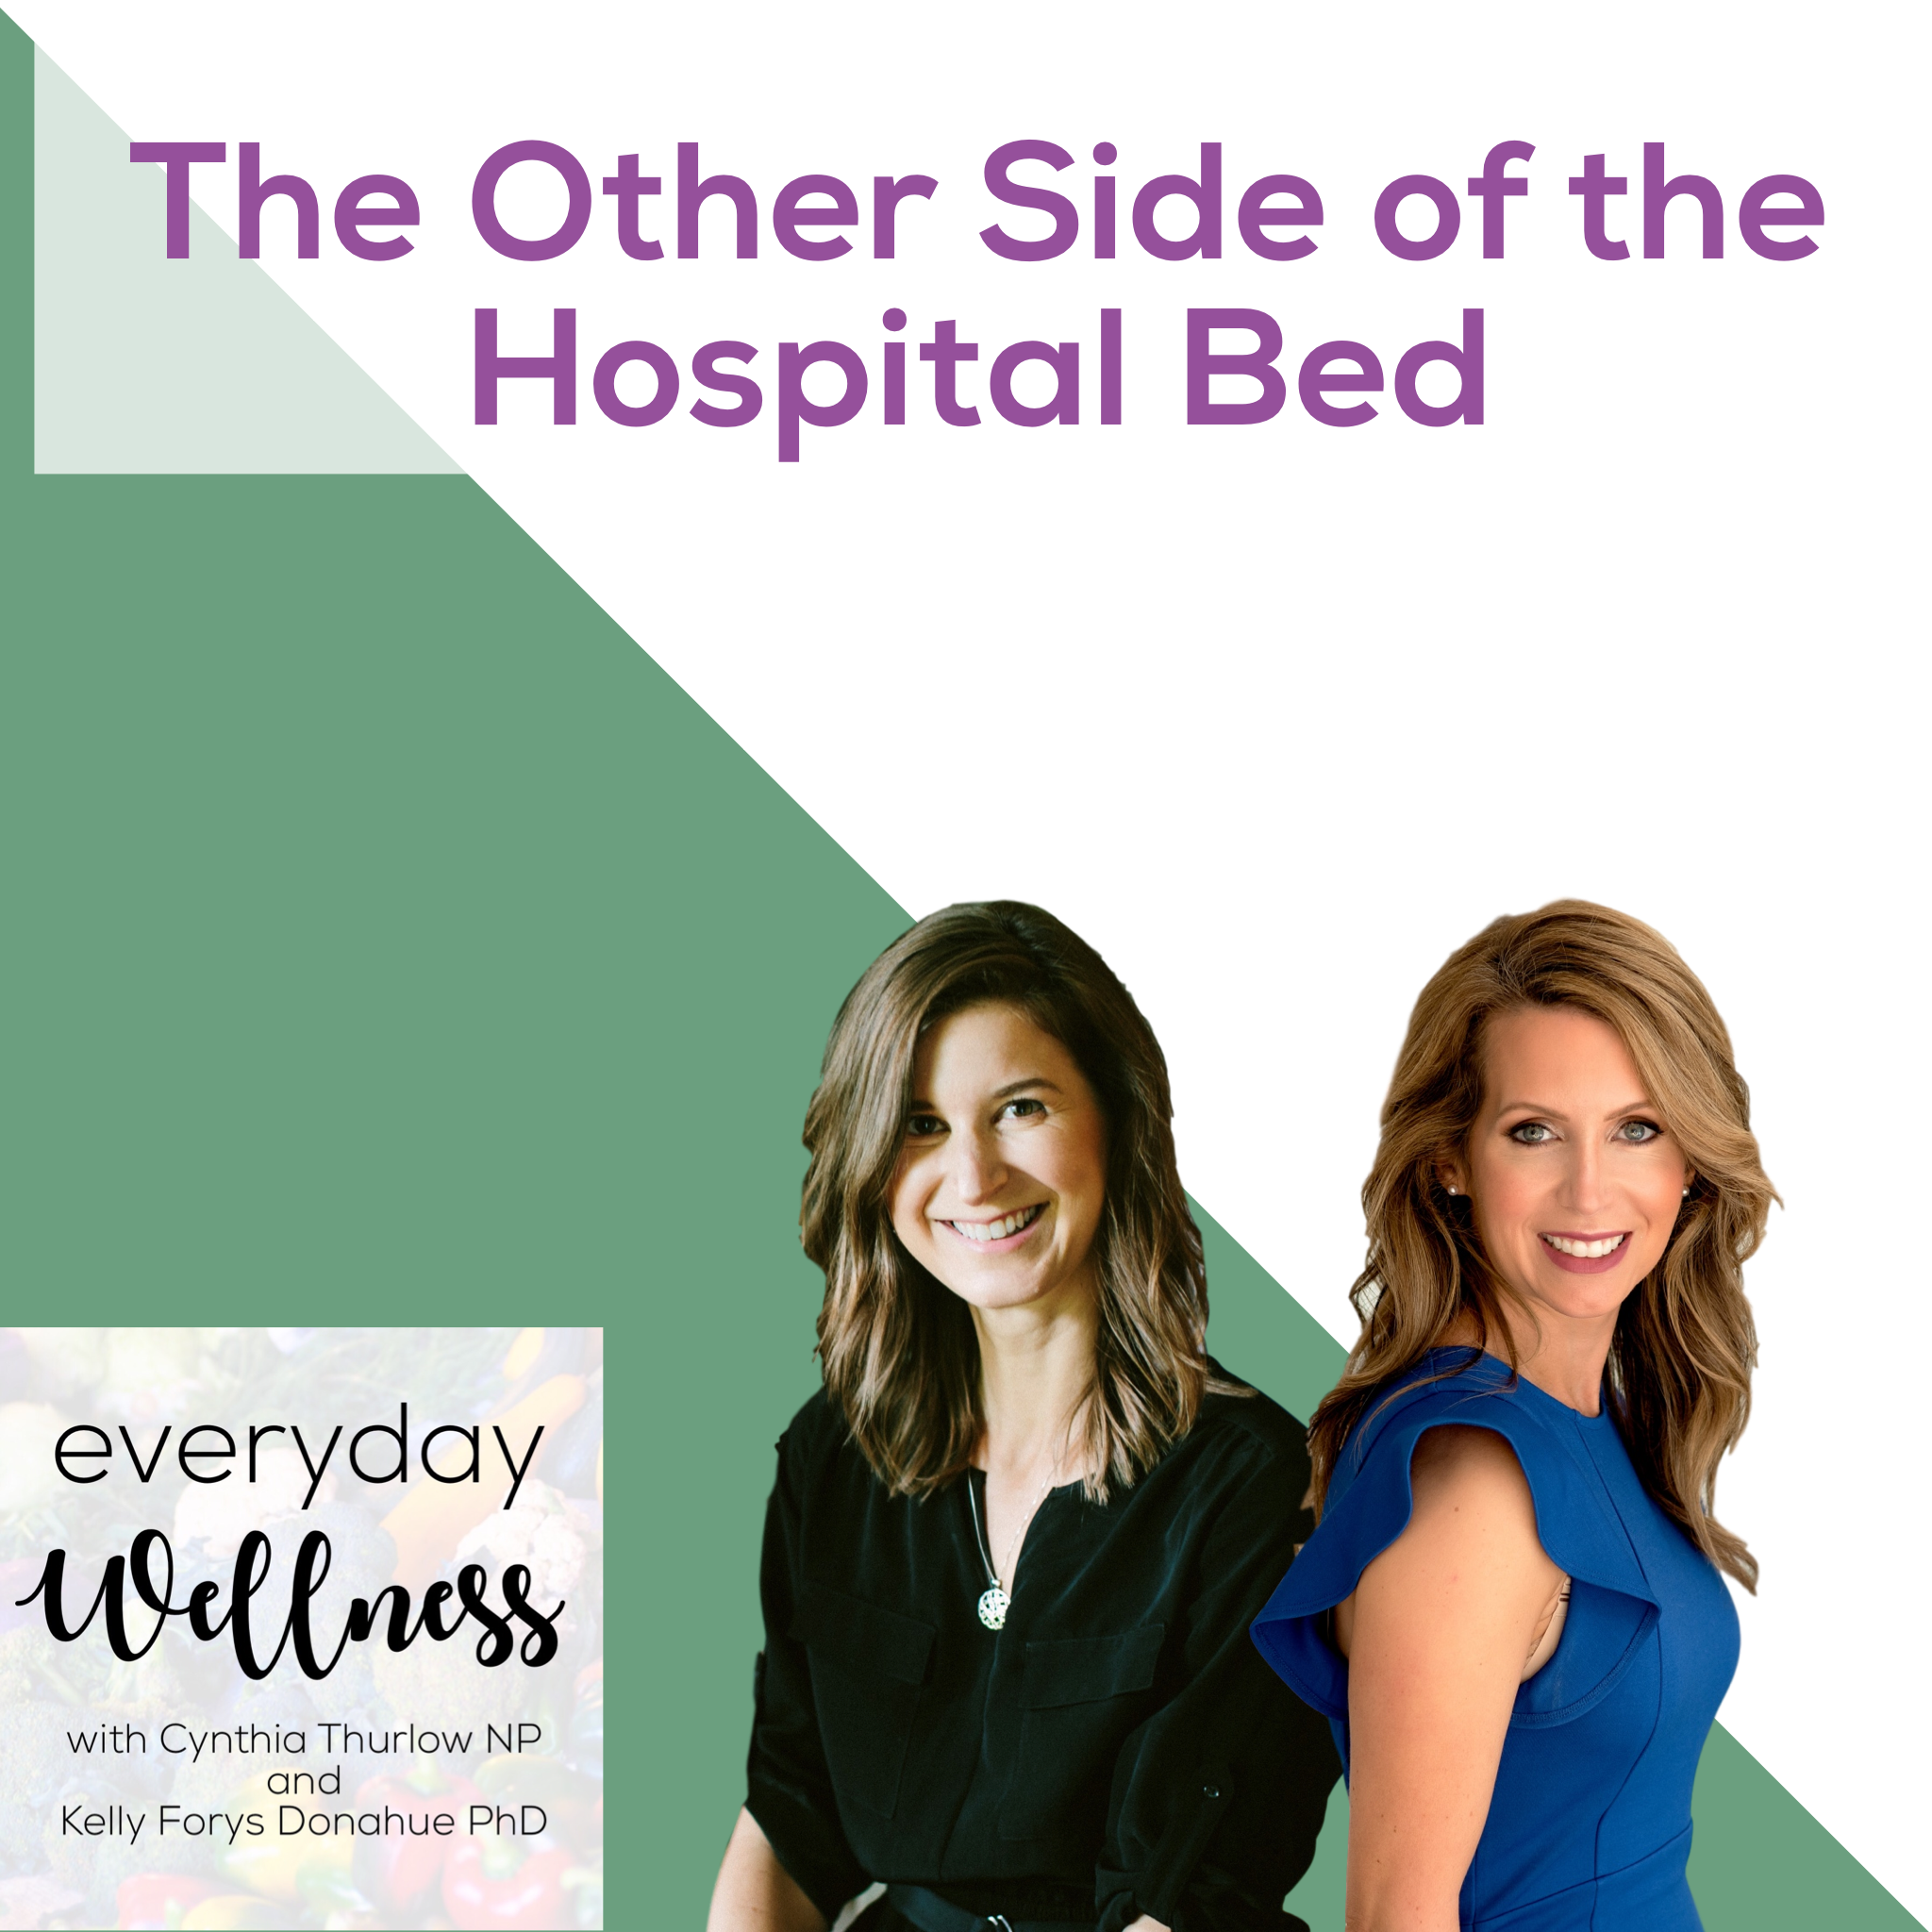 The Other Side of the Hospital Bed